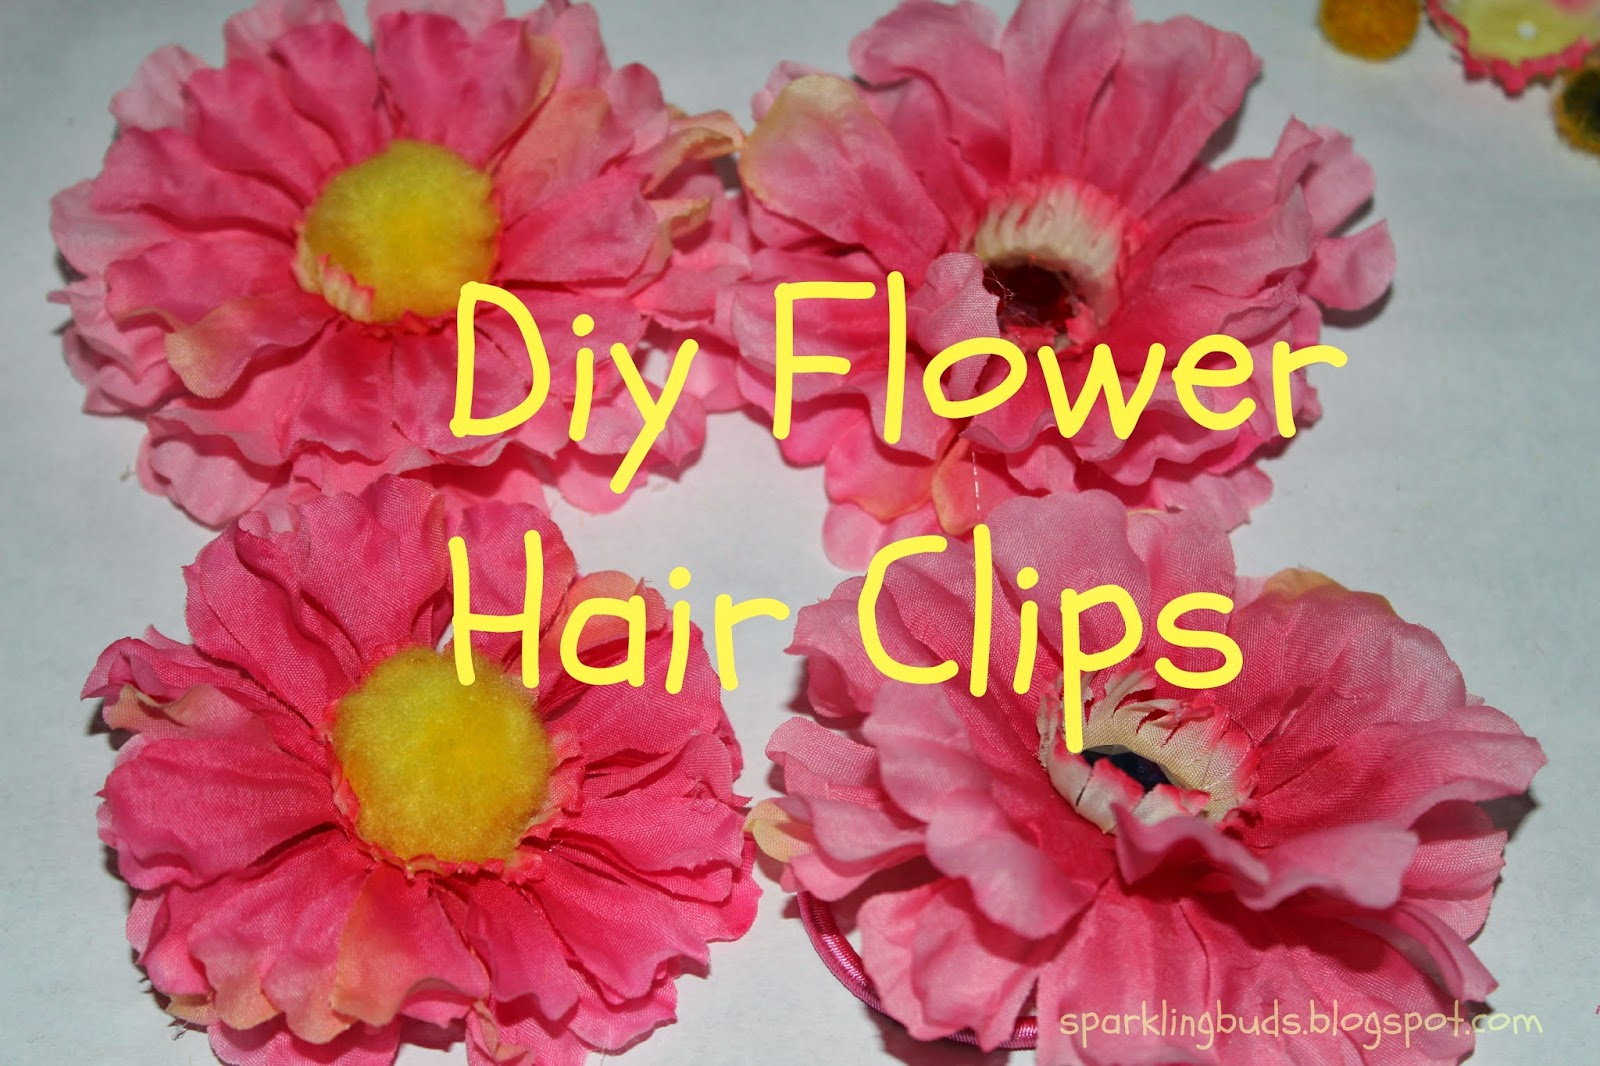 Diy flower hair clips sparklingbuds hi everyonewe enjoyed creating our own flower hair clips this fun diy project is simple that my seven year old did it by herself mightylinksfo